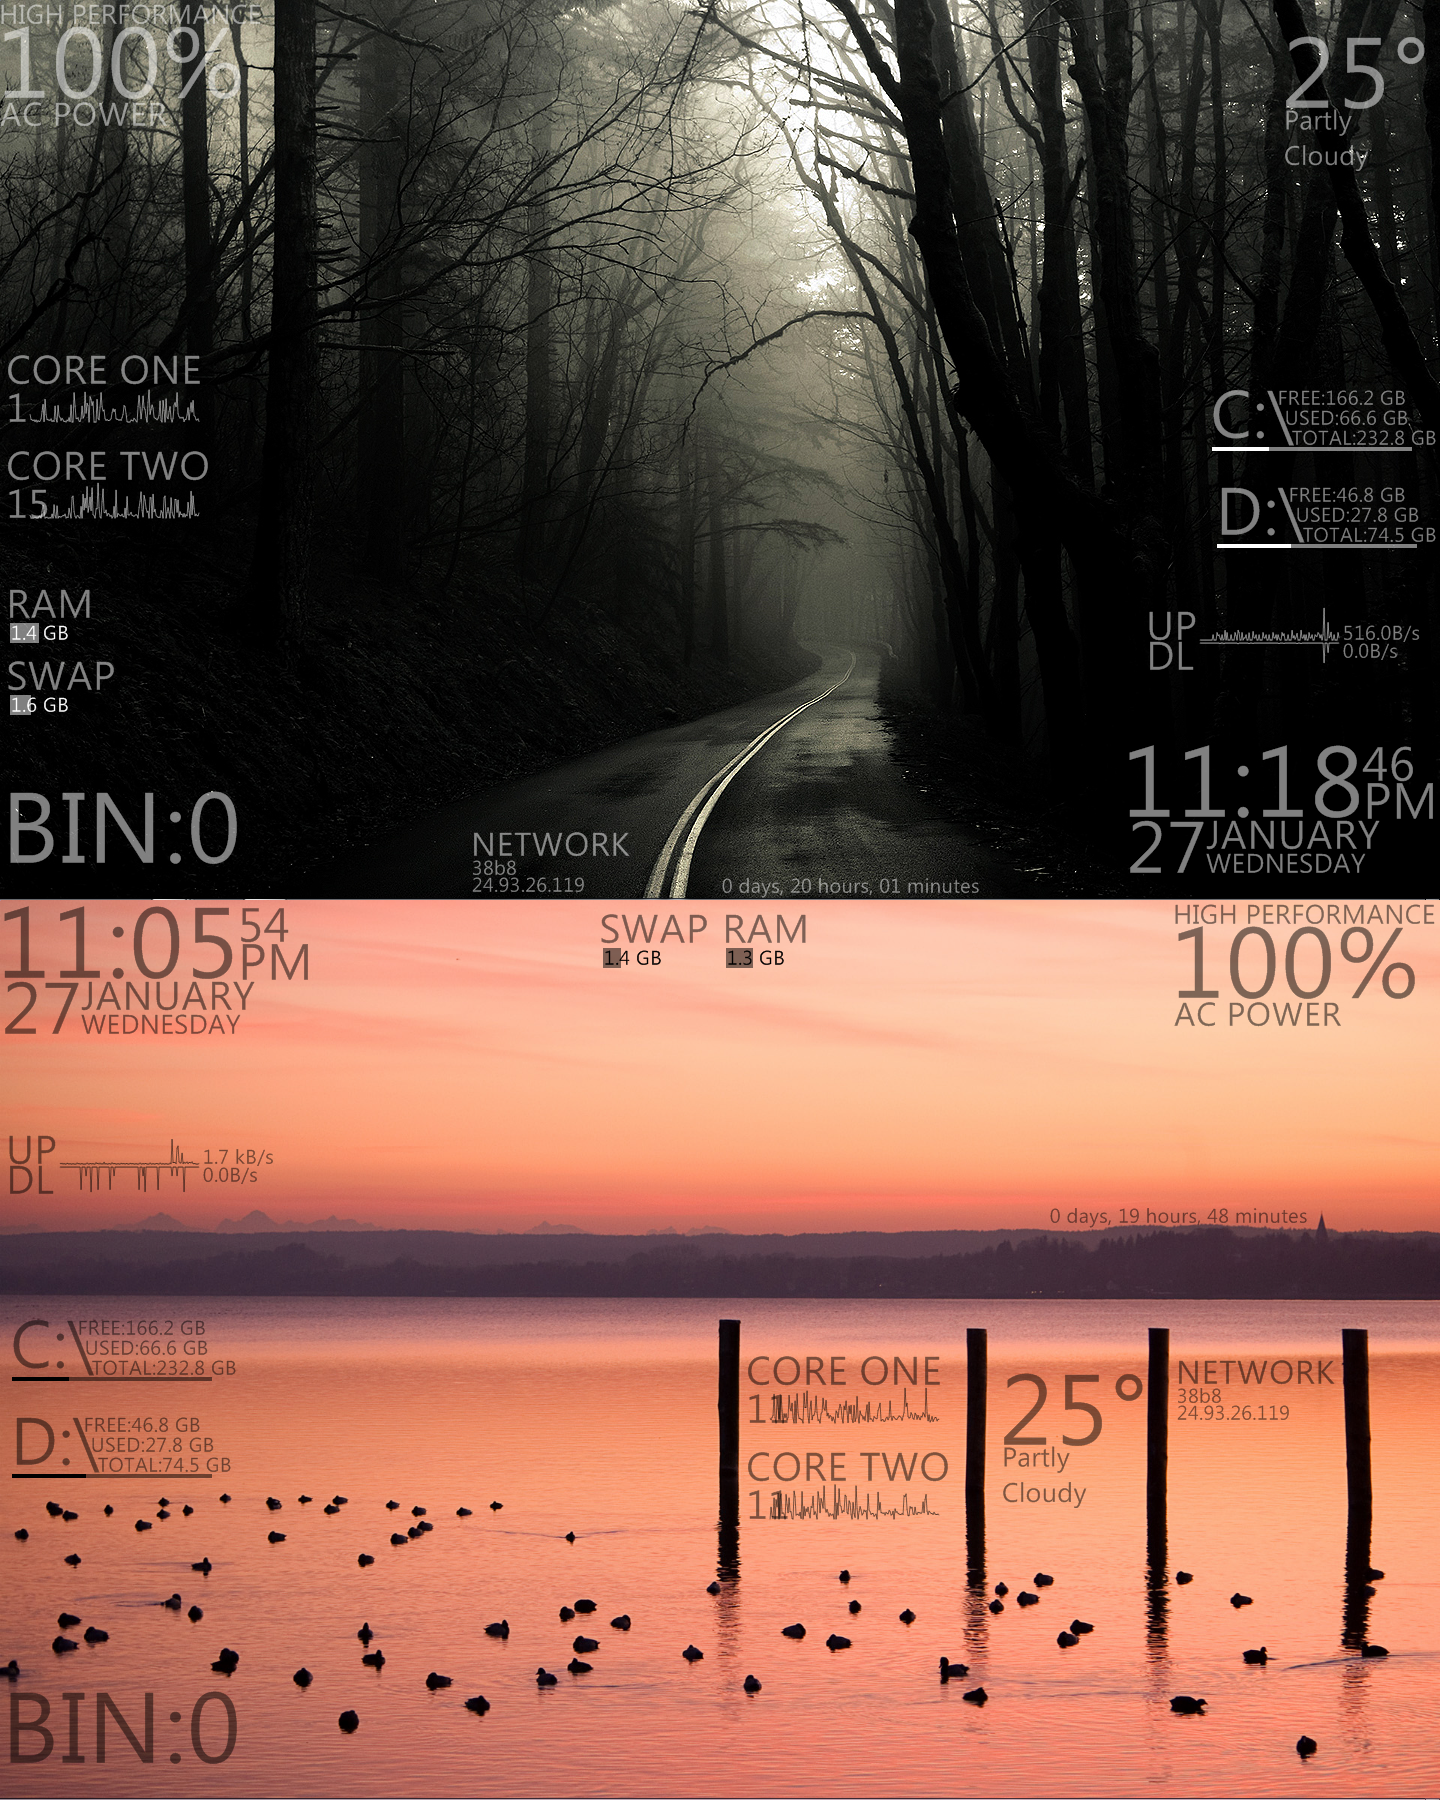 Flat v1.1 for Rainmeter